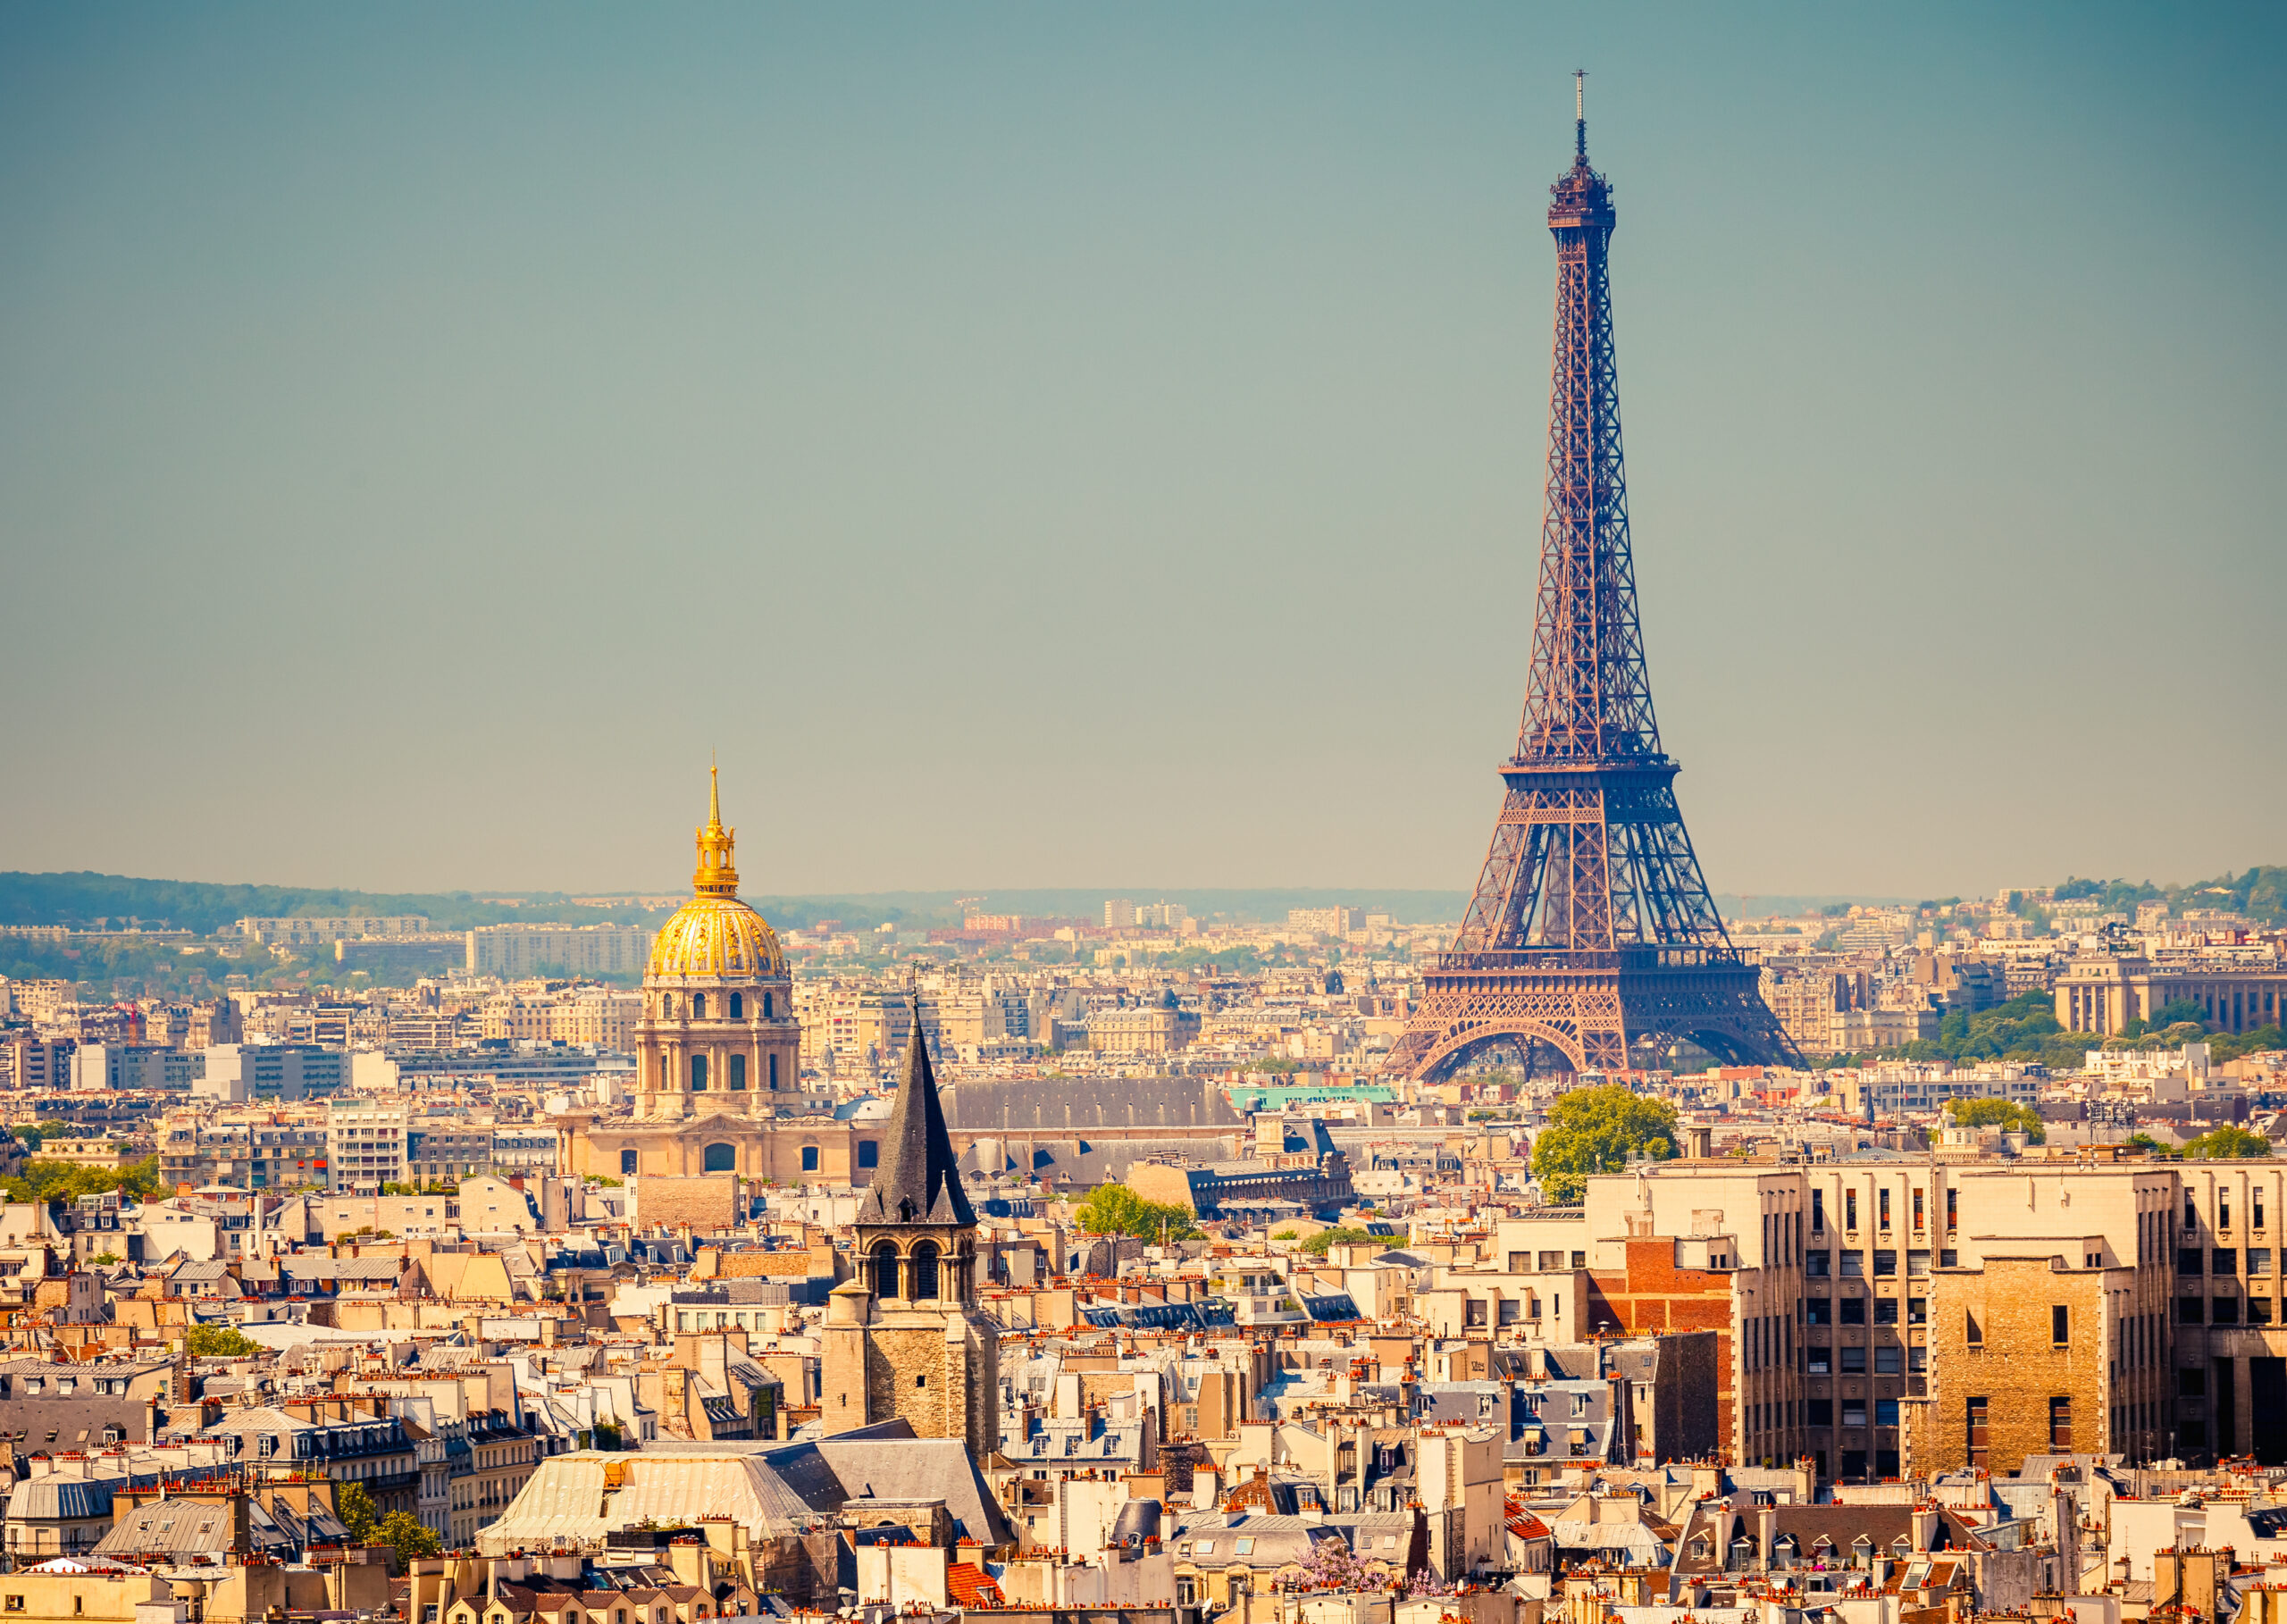 Stunning view of the Eiffel Tower from Paris, France.